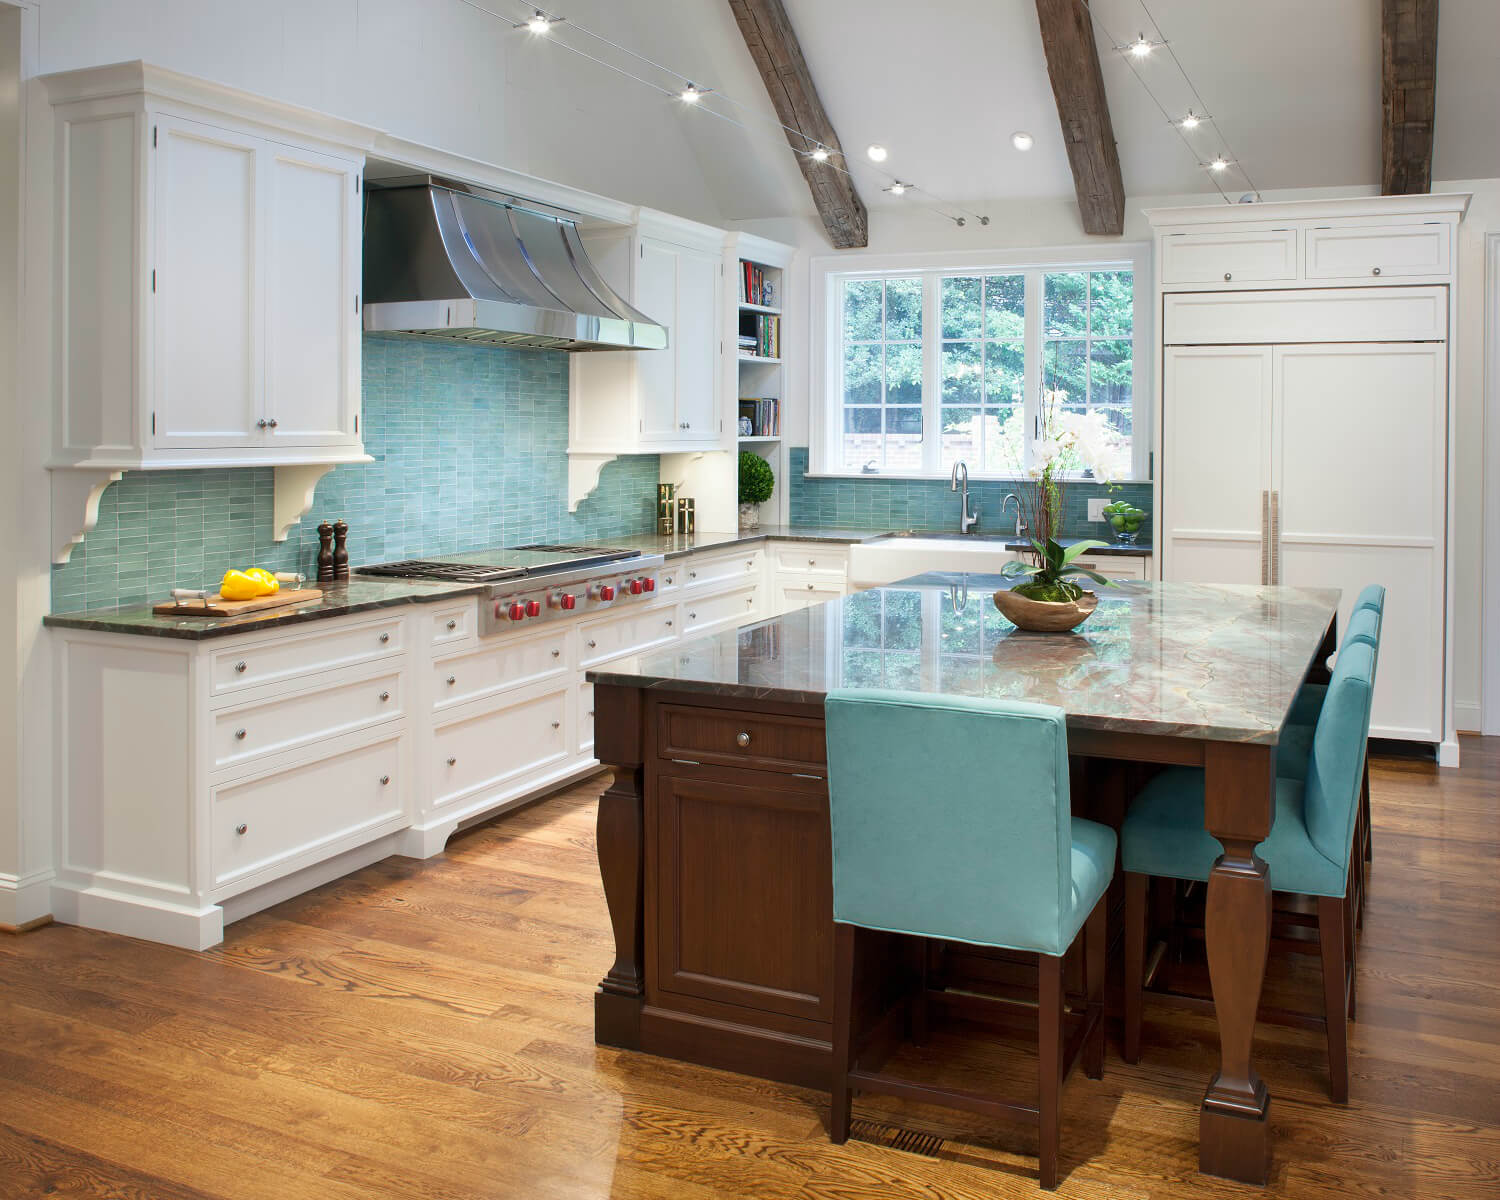 Kitchen Design and Remodel in Charlotte, NC - Bistany Design